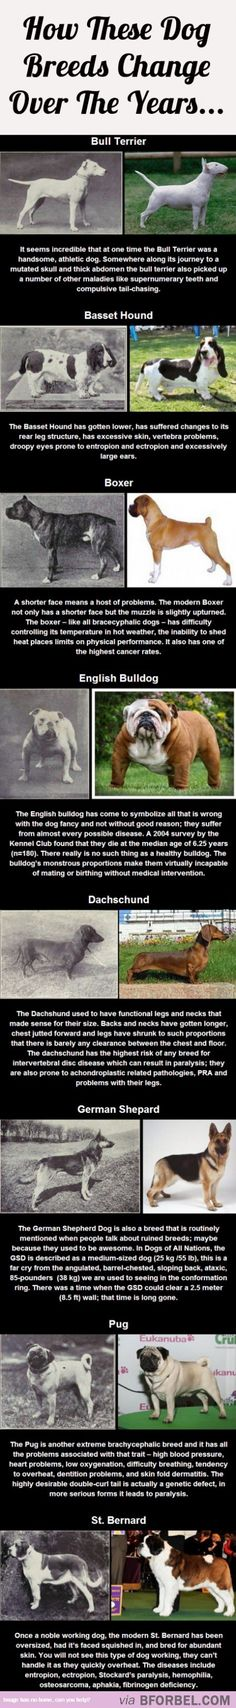 Overbreeding: This is what constant, strict breeding does to dogs. Don't shop, Adopt.